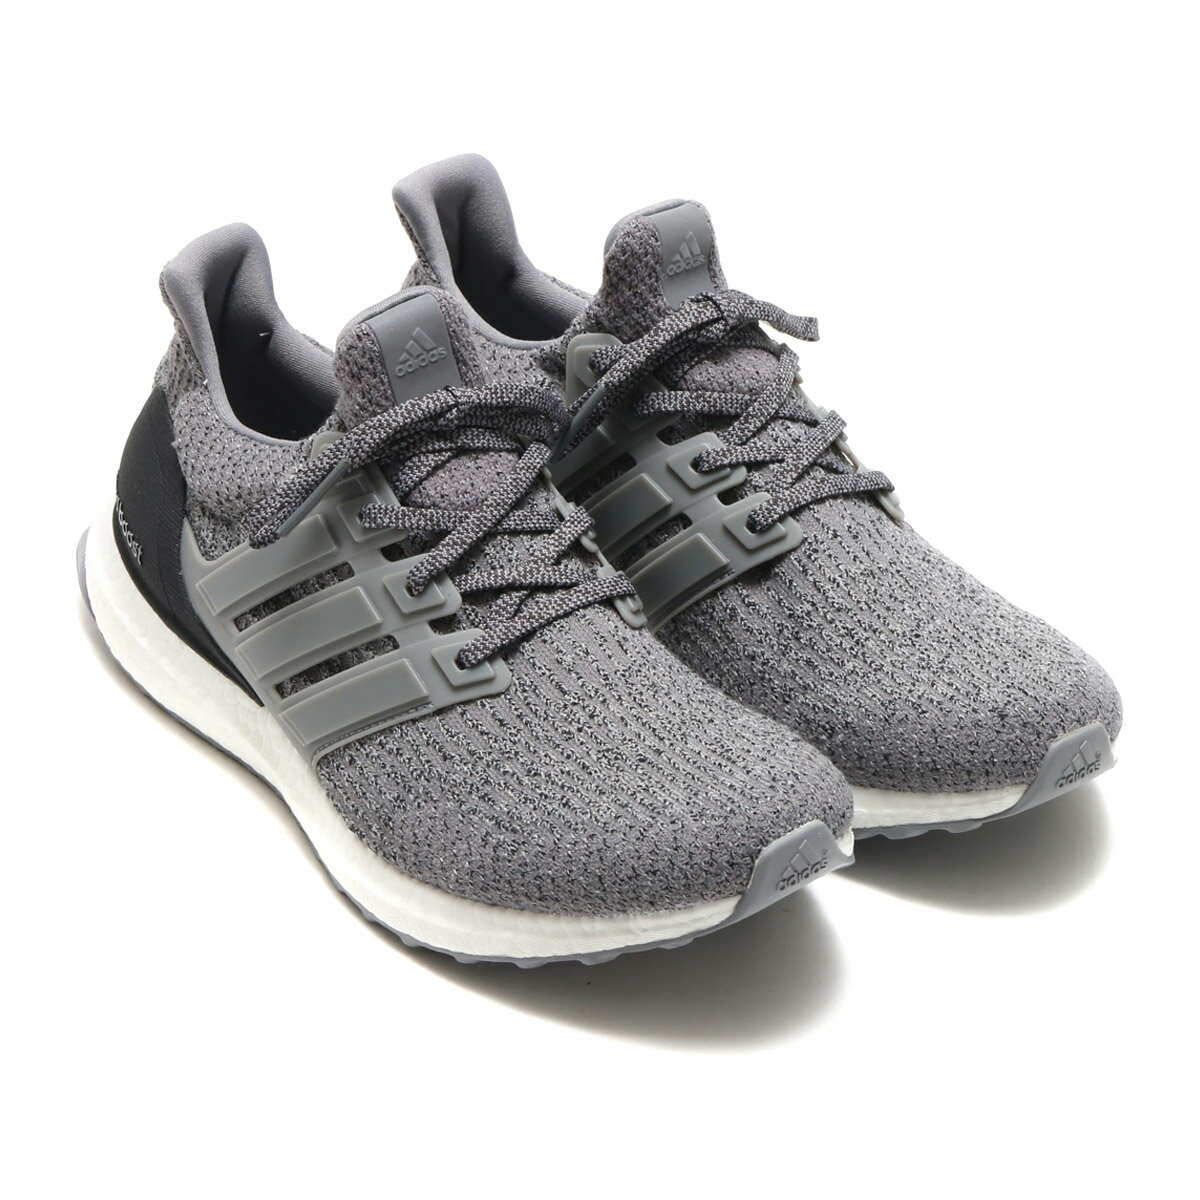 adidas Originals UltraBOOST(アディダス オリジナルス ウルトラブースト)WOOL (Grey Three/Grey Three/Grey Four) 17FW-I